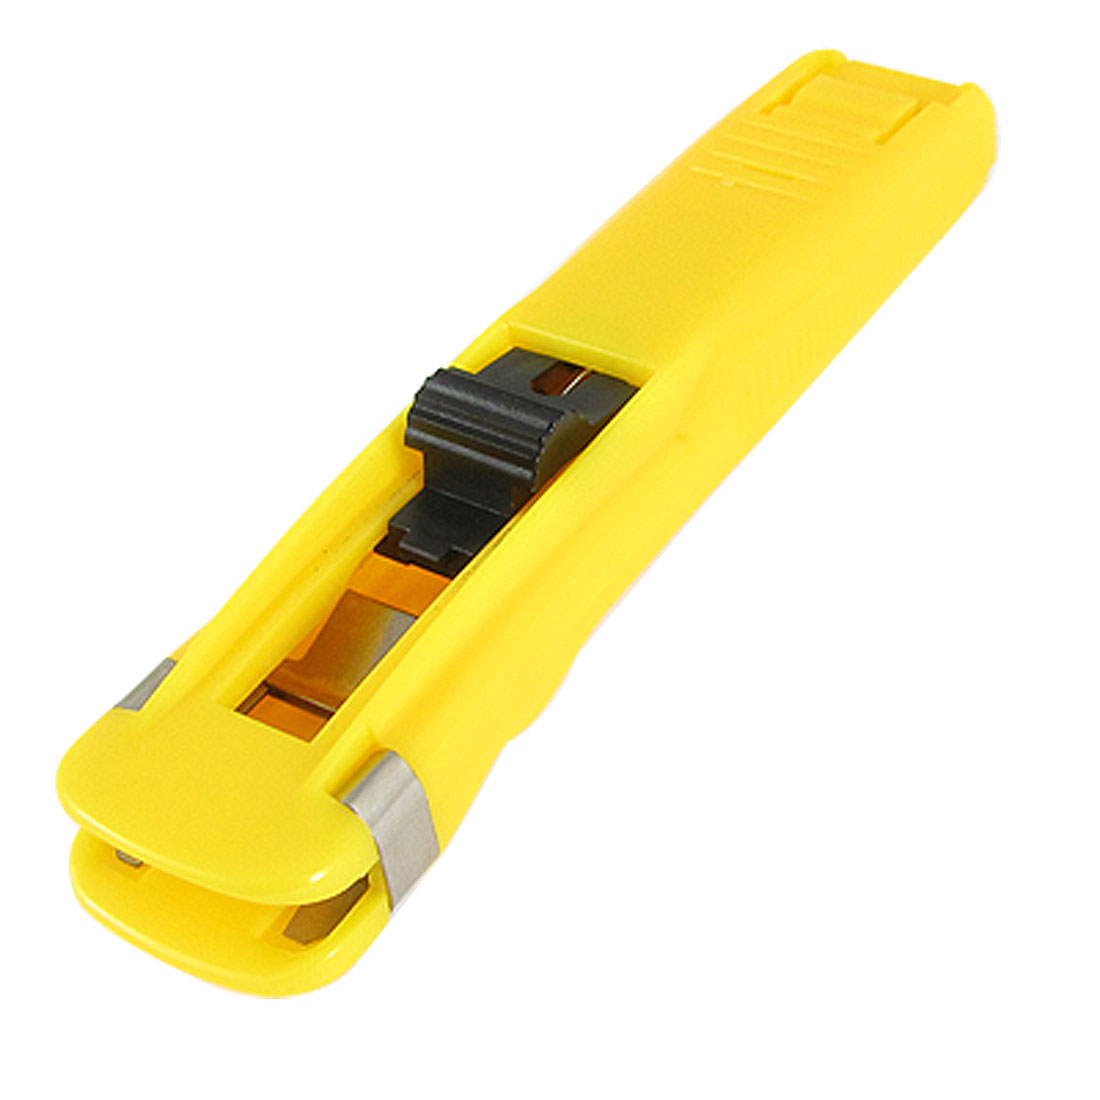 Office Plastic Shell Paper Clamp Clip Dispenser Yellow